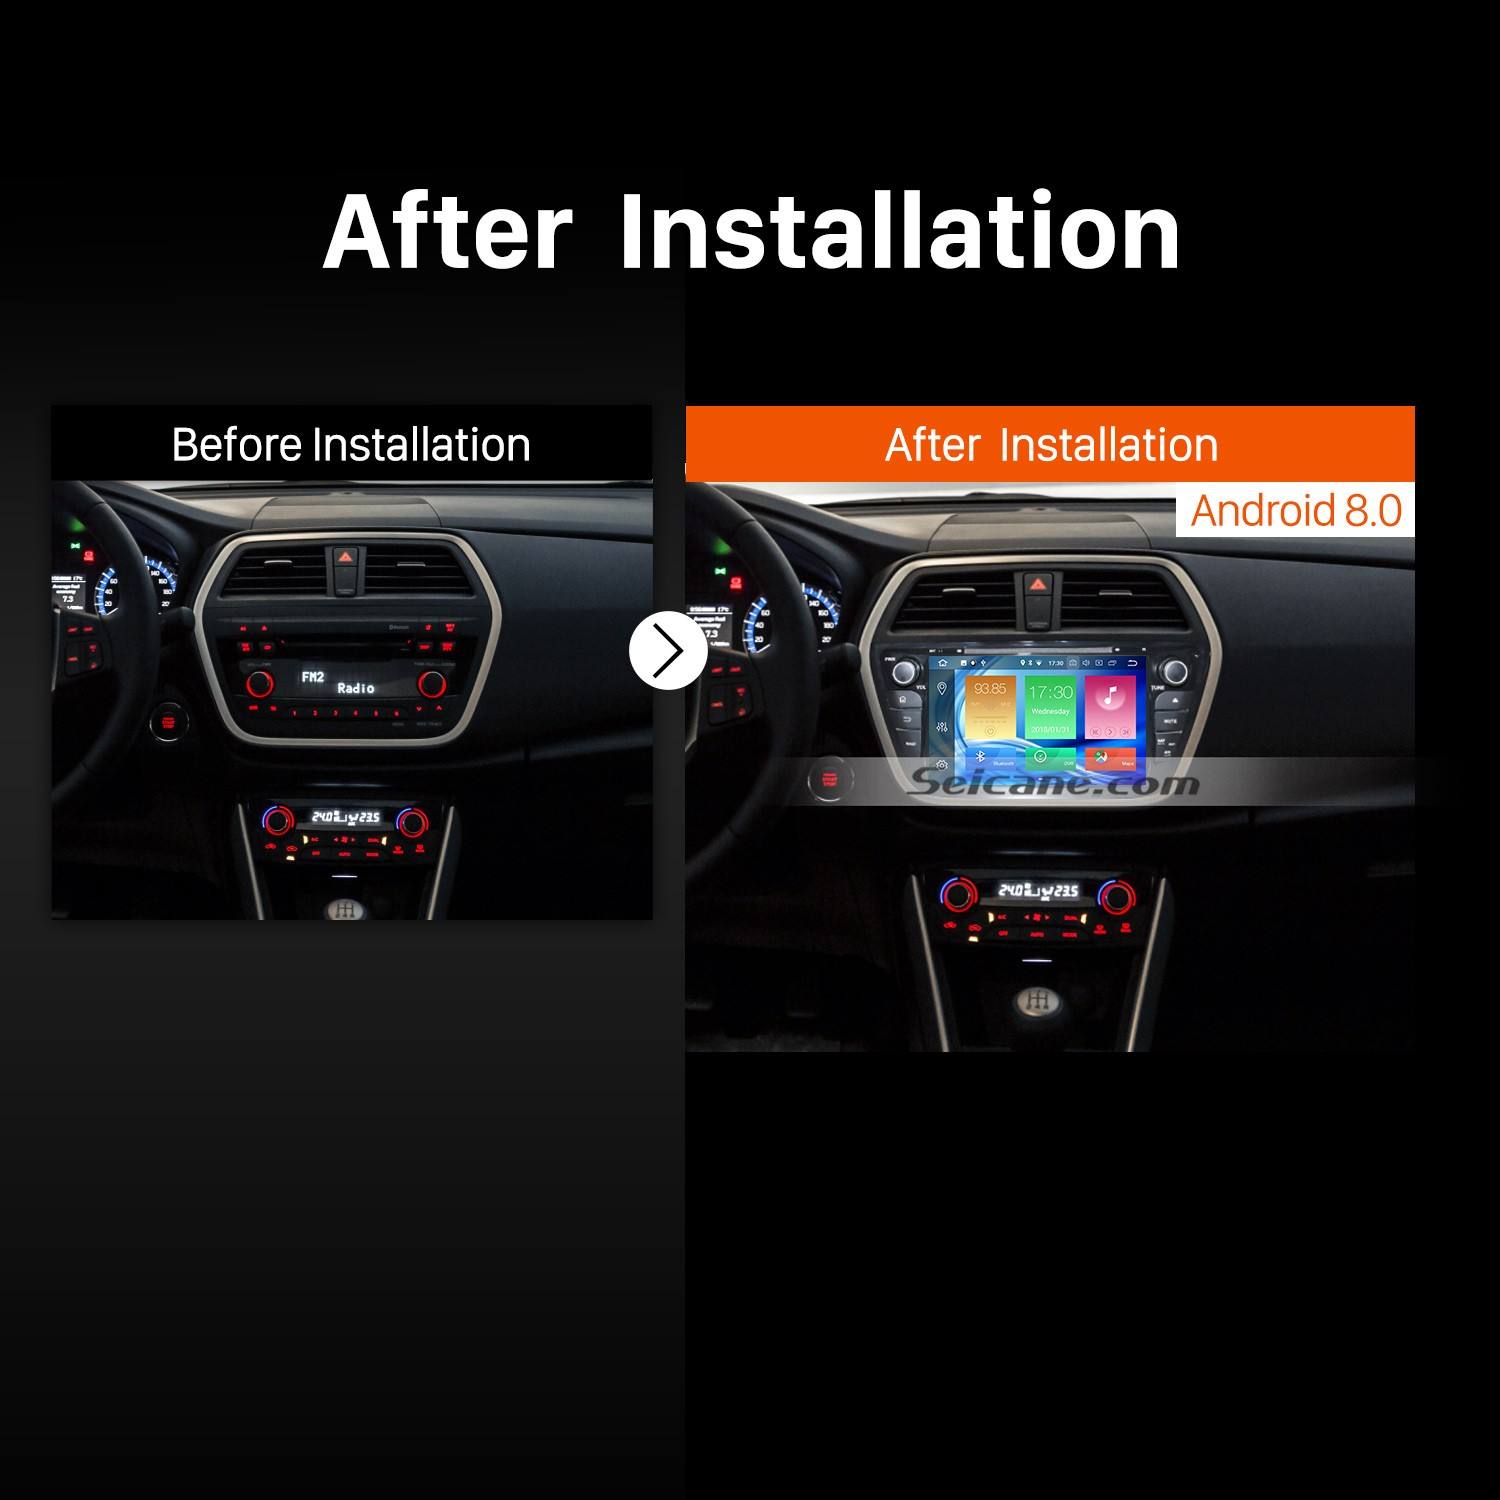 2013 2014 2015 Suzuki S-Cross SX4 Car Radio after installation